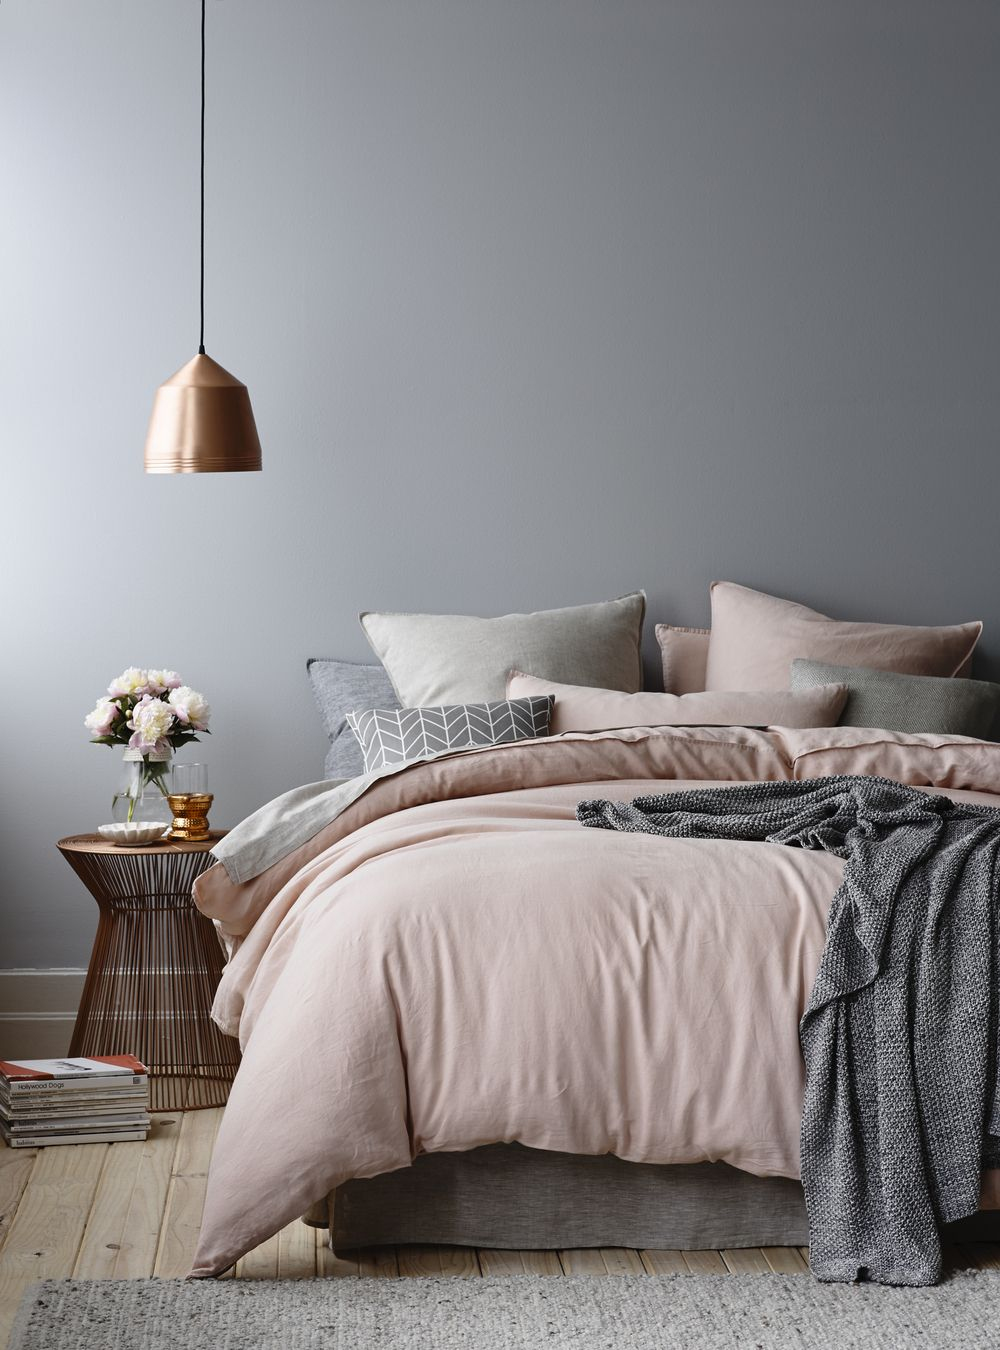 31 Cool Bedroom Ideas To Light Up Your World Bedroom